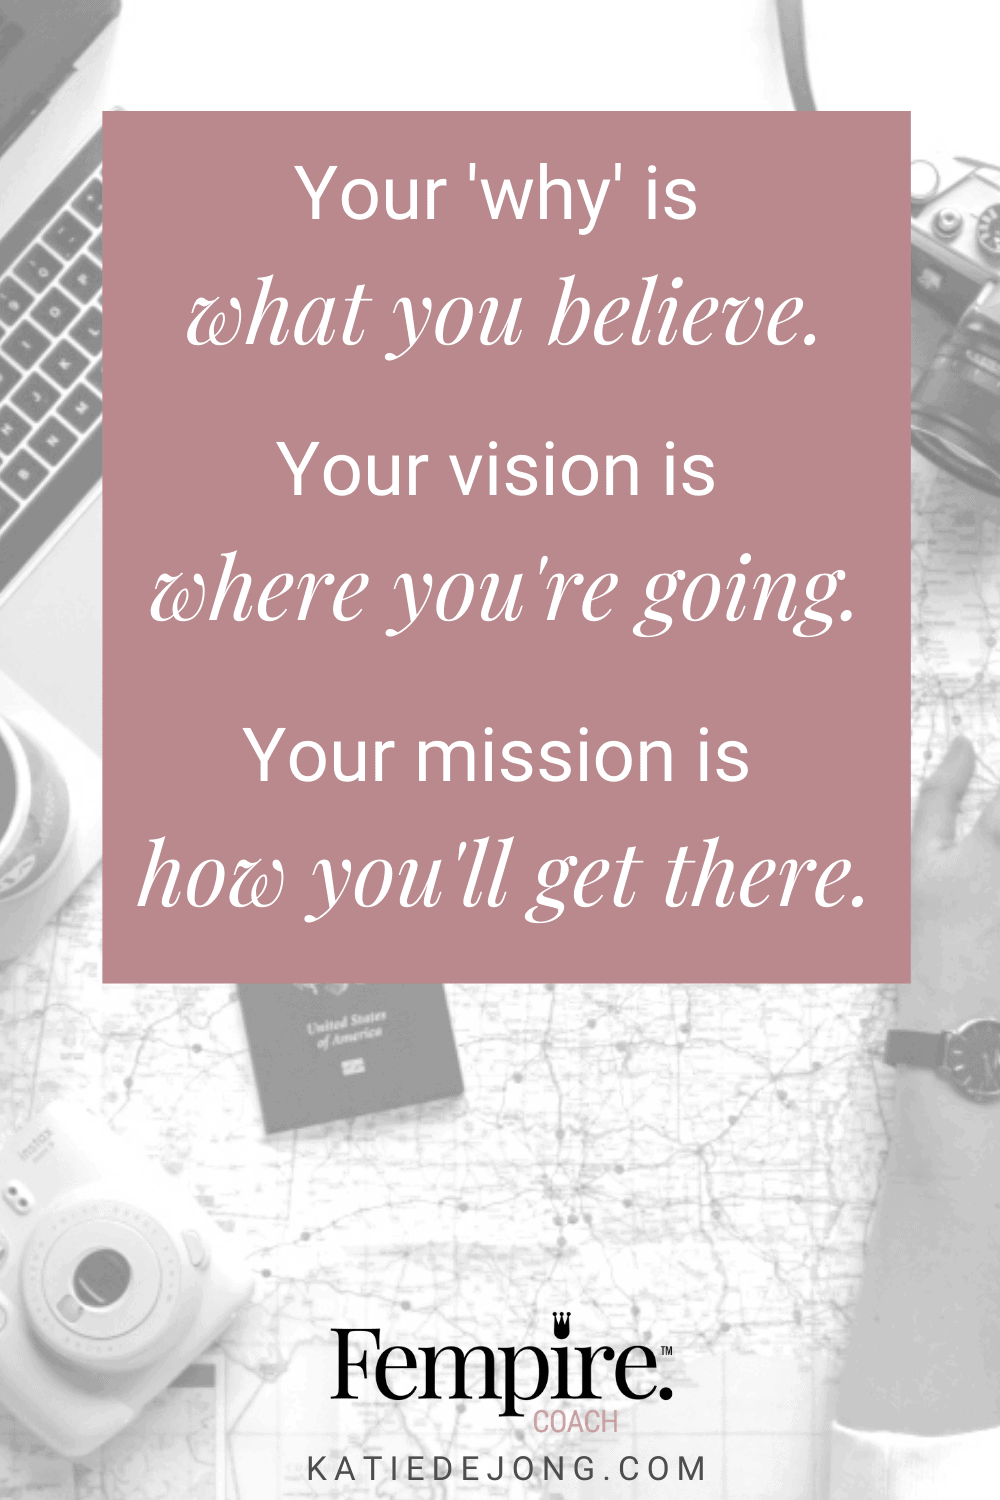 One of the most powerful things you can do in marketing is to clearly articulate your business 'why', vision, and mission. There's a subtle but key difference between each of these different statements and they each serve a different purpose. Read on to discover what those critical differences are. #fempire #fempirecoach #womeninbusiness #ladyboss #womeninbusiness #womensupportingwomen #marketing #marketingstrategy #smallbusiness #successmindset #entrepreneur #success #businessgrowth